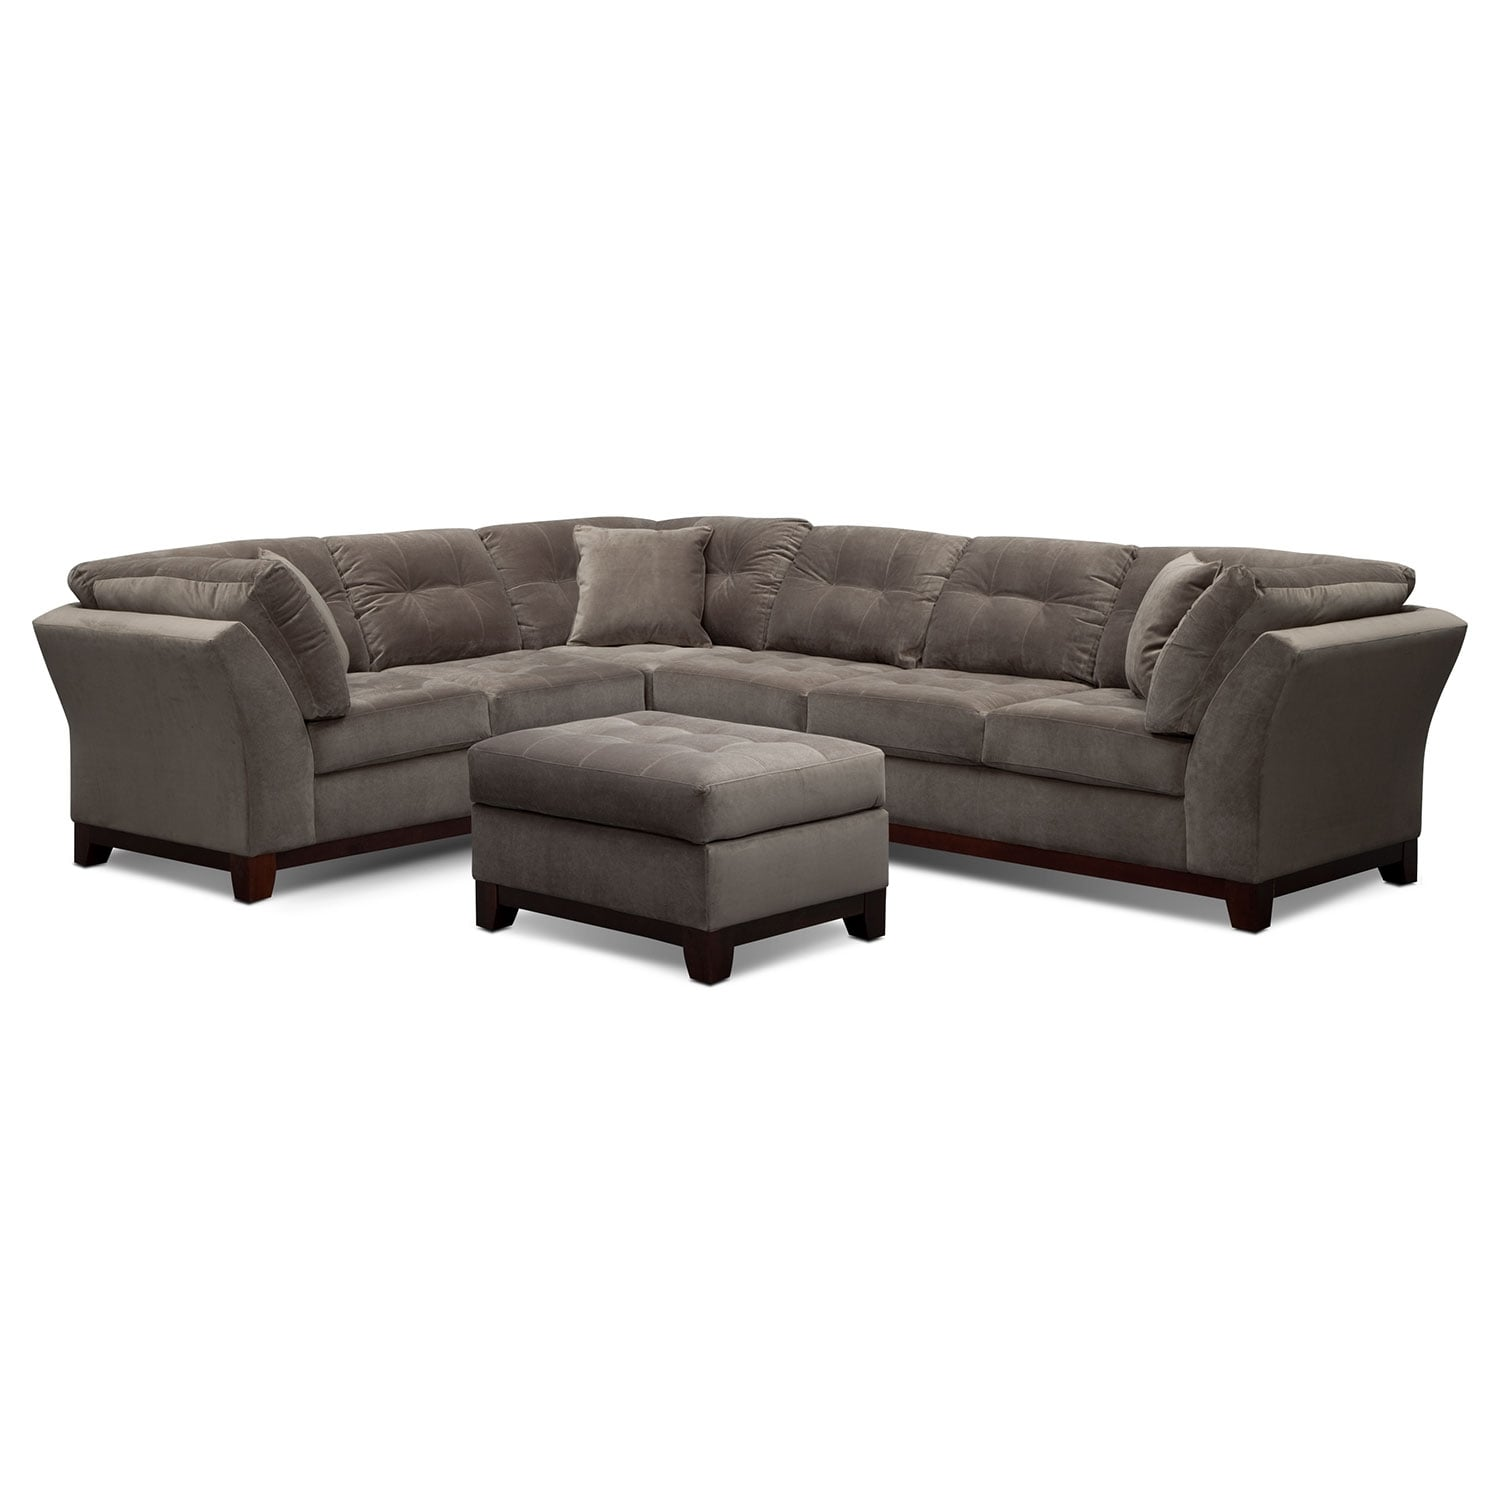 Living Room Furniture - Solace Gray II 2 Pc. Sectional and Ottoman